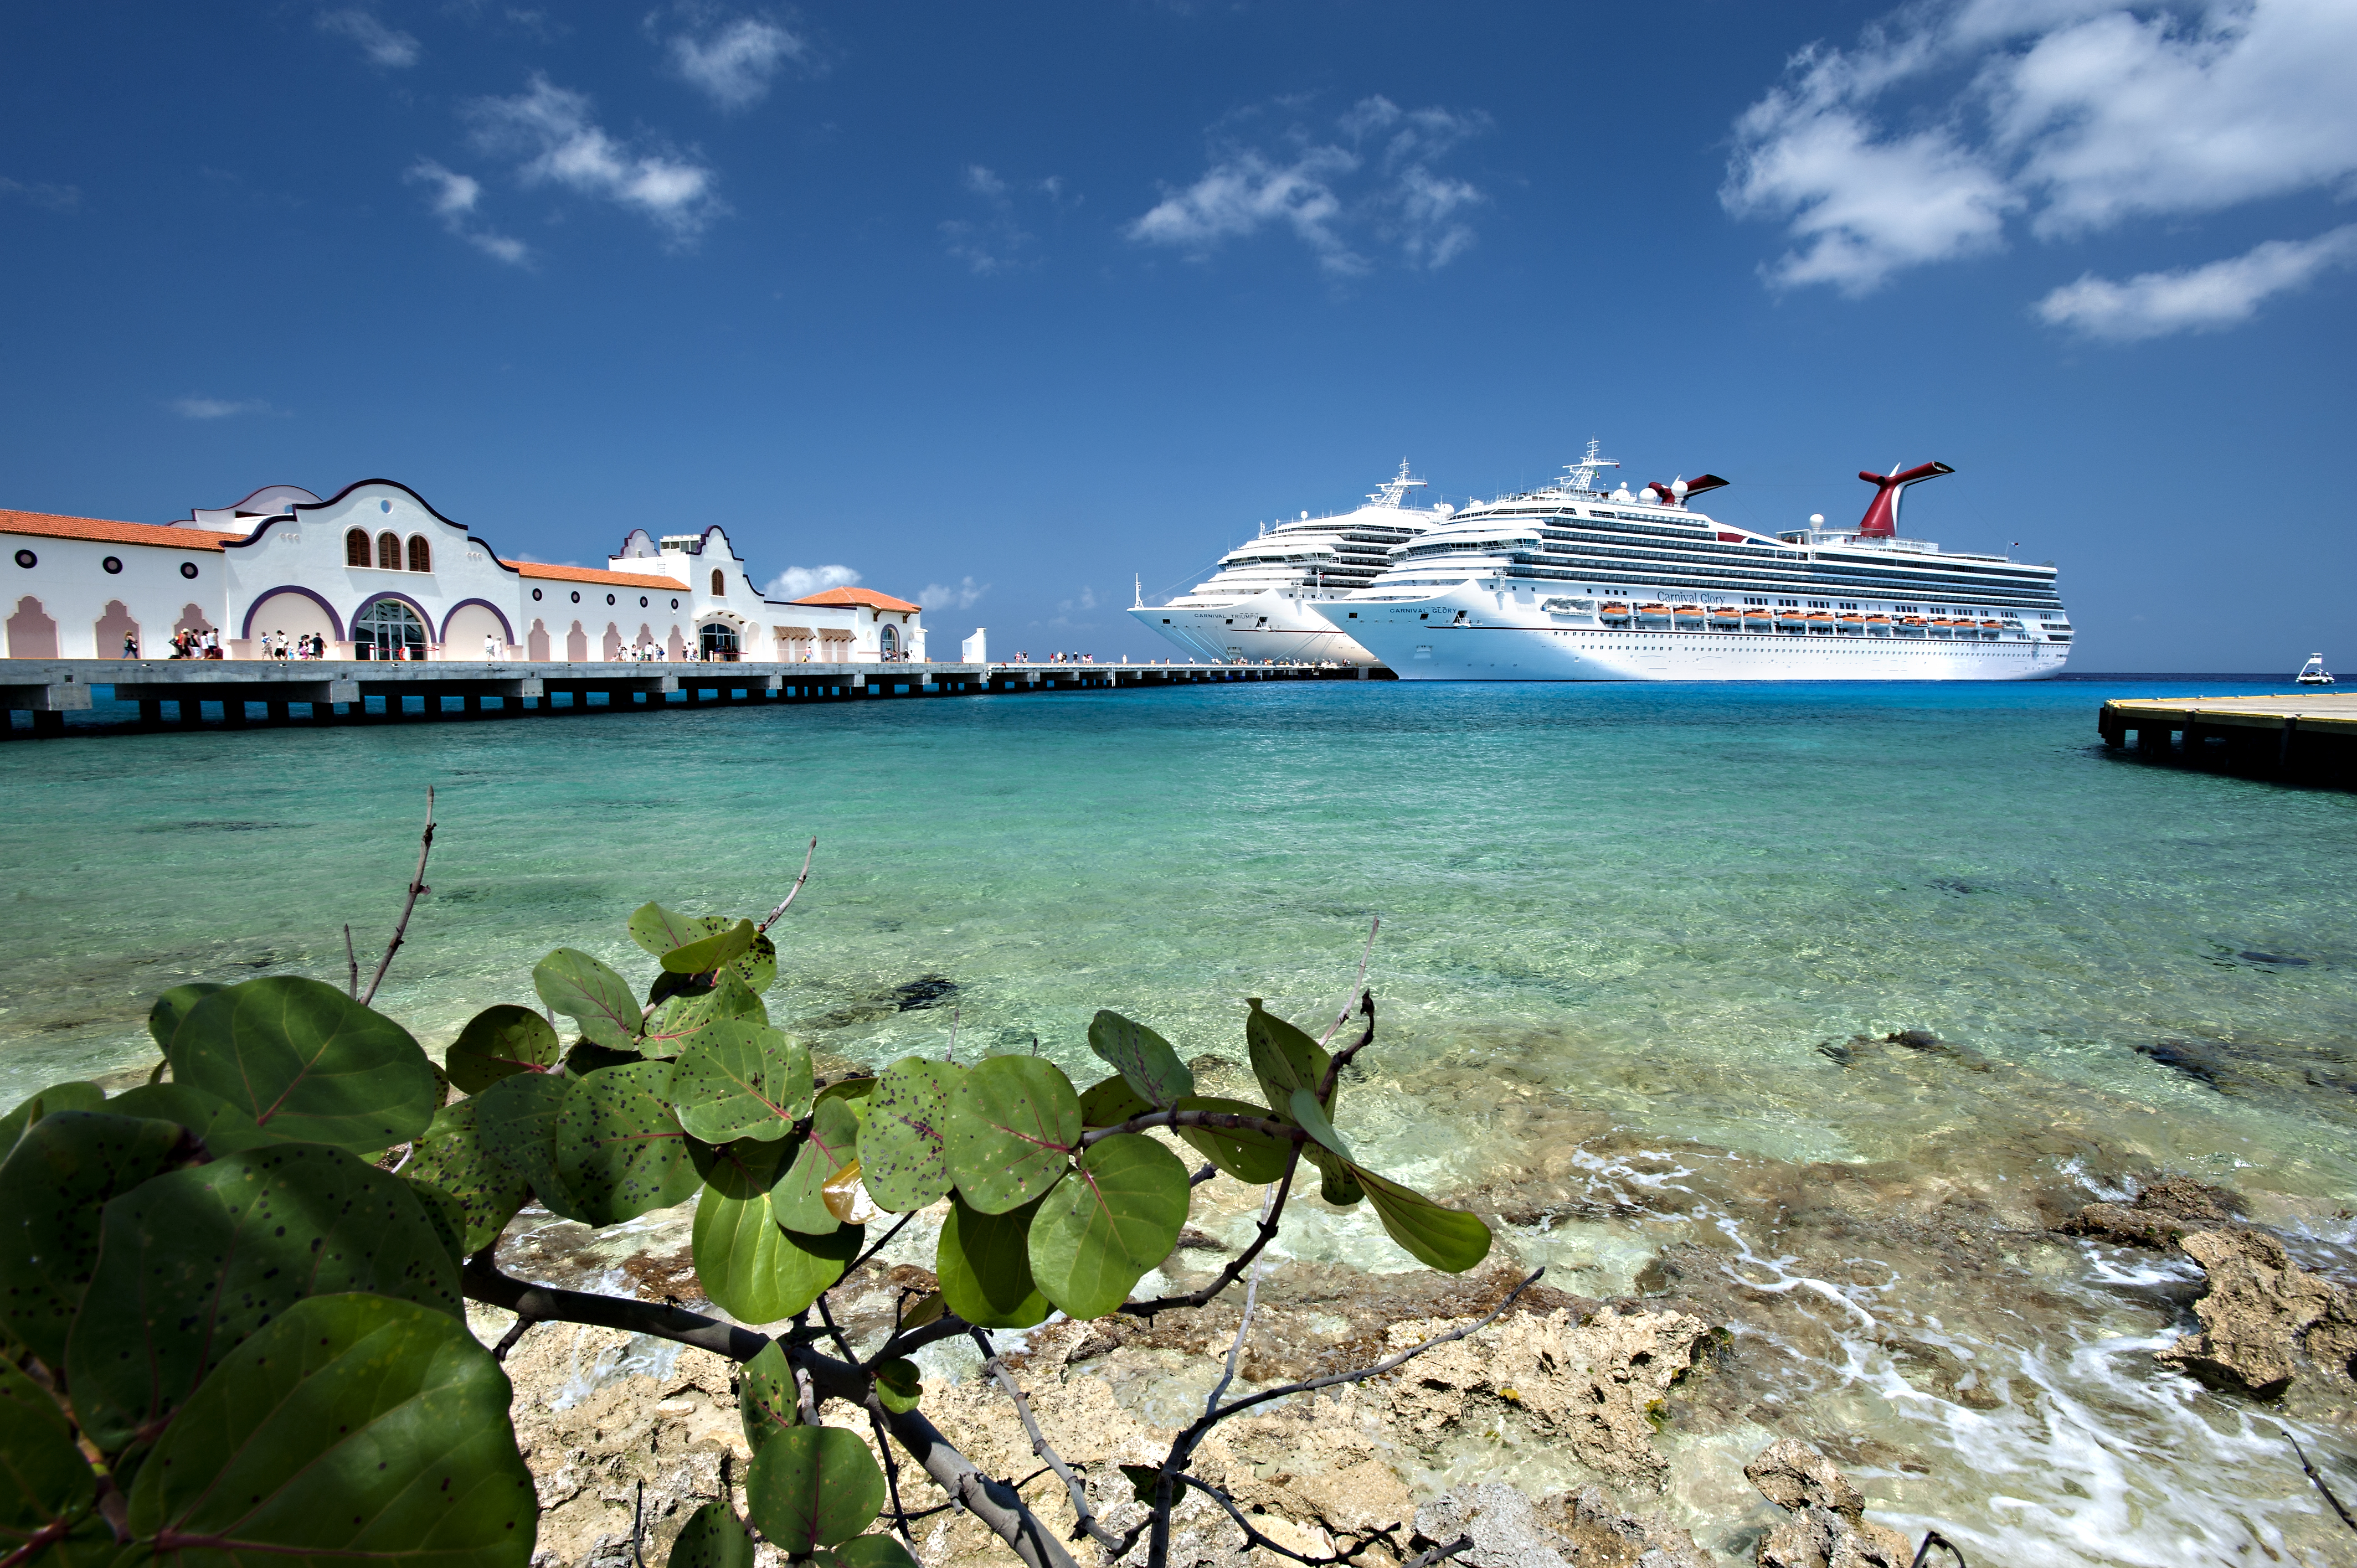 Carnival-Cruise-Lines-Carnival-Glory-Schip-Cozumel-1